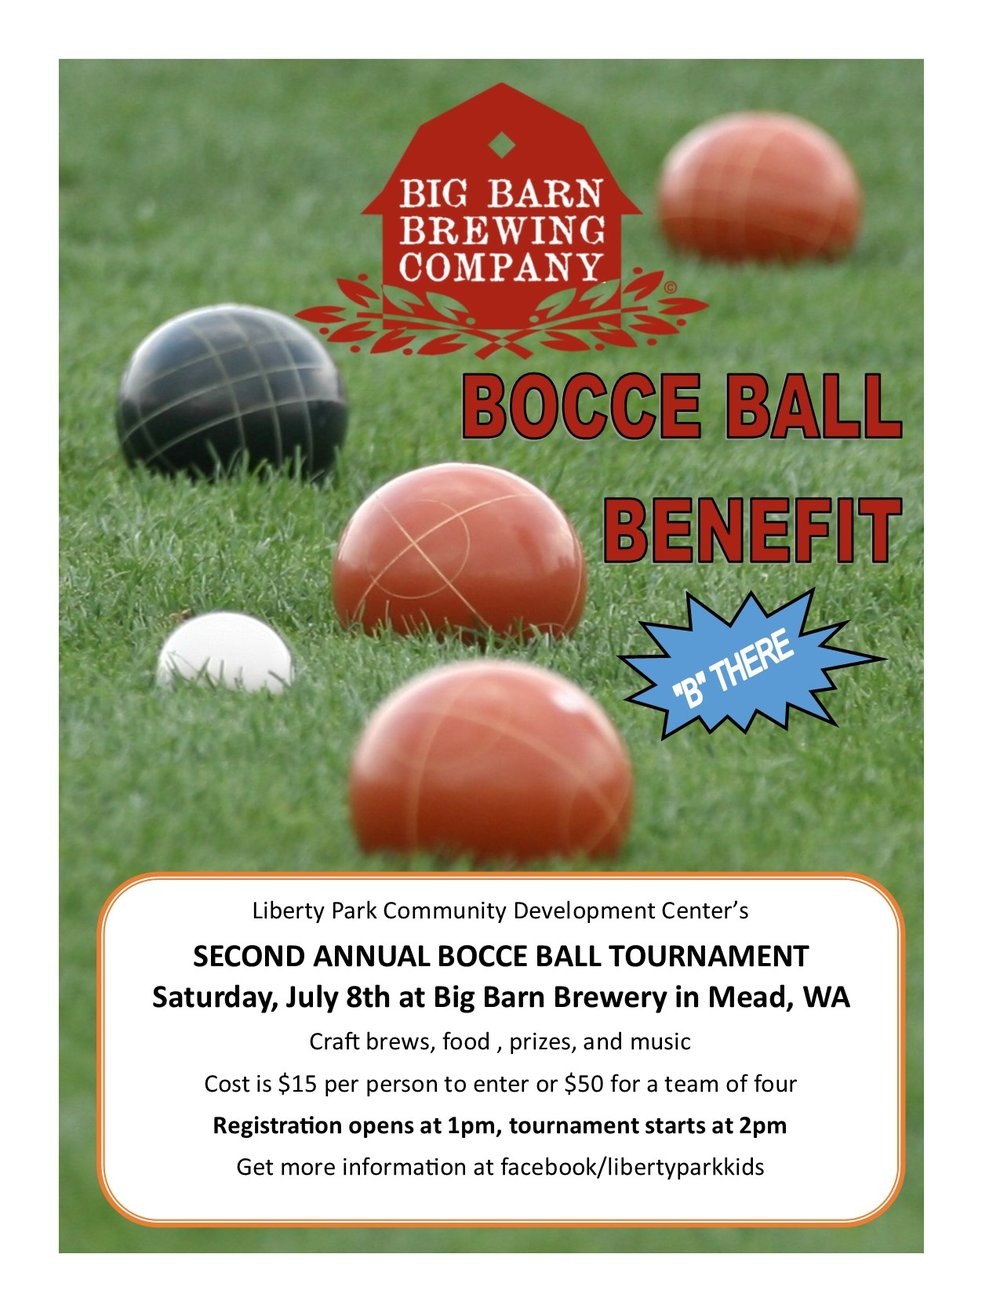 Liberty Park Community Development Center's SECOND ANNUAL BOCCE BALL TOURNAMENT Saturday, July 8th at Big Barn Brewery in Mead, WA Craft brews, food , prizes, and music Cost is $15 per person to enter or $50 for a team of four Registration opens at 1pm, tournament starts at 2pm Get more information at facebook/libertyparkkids